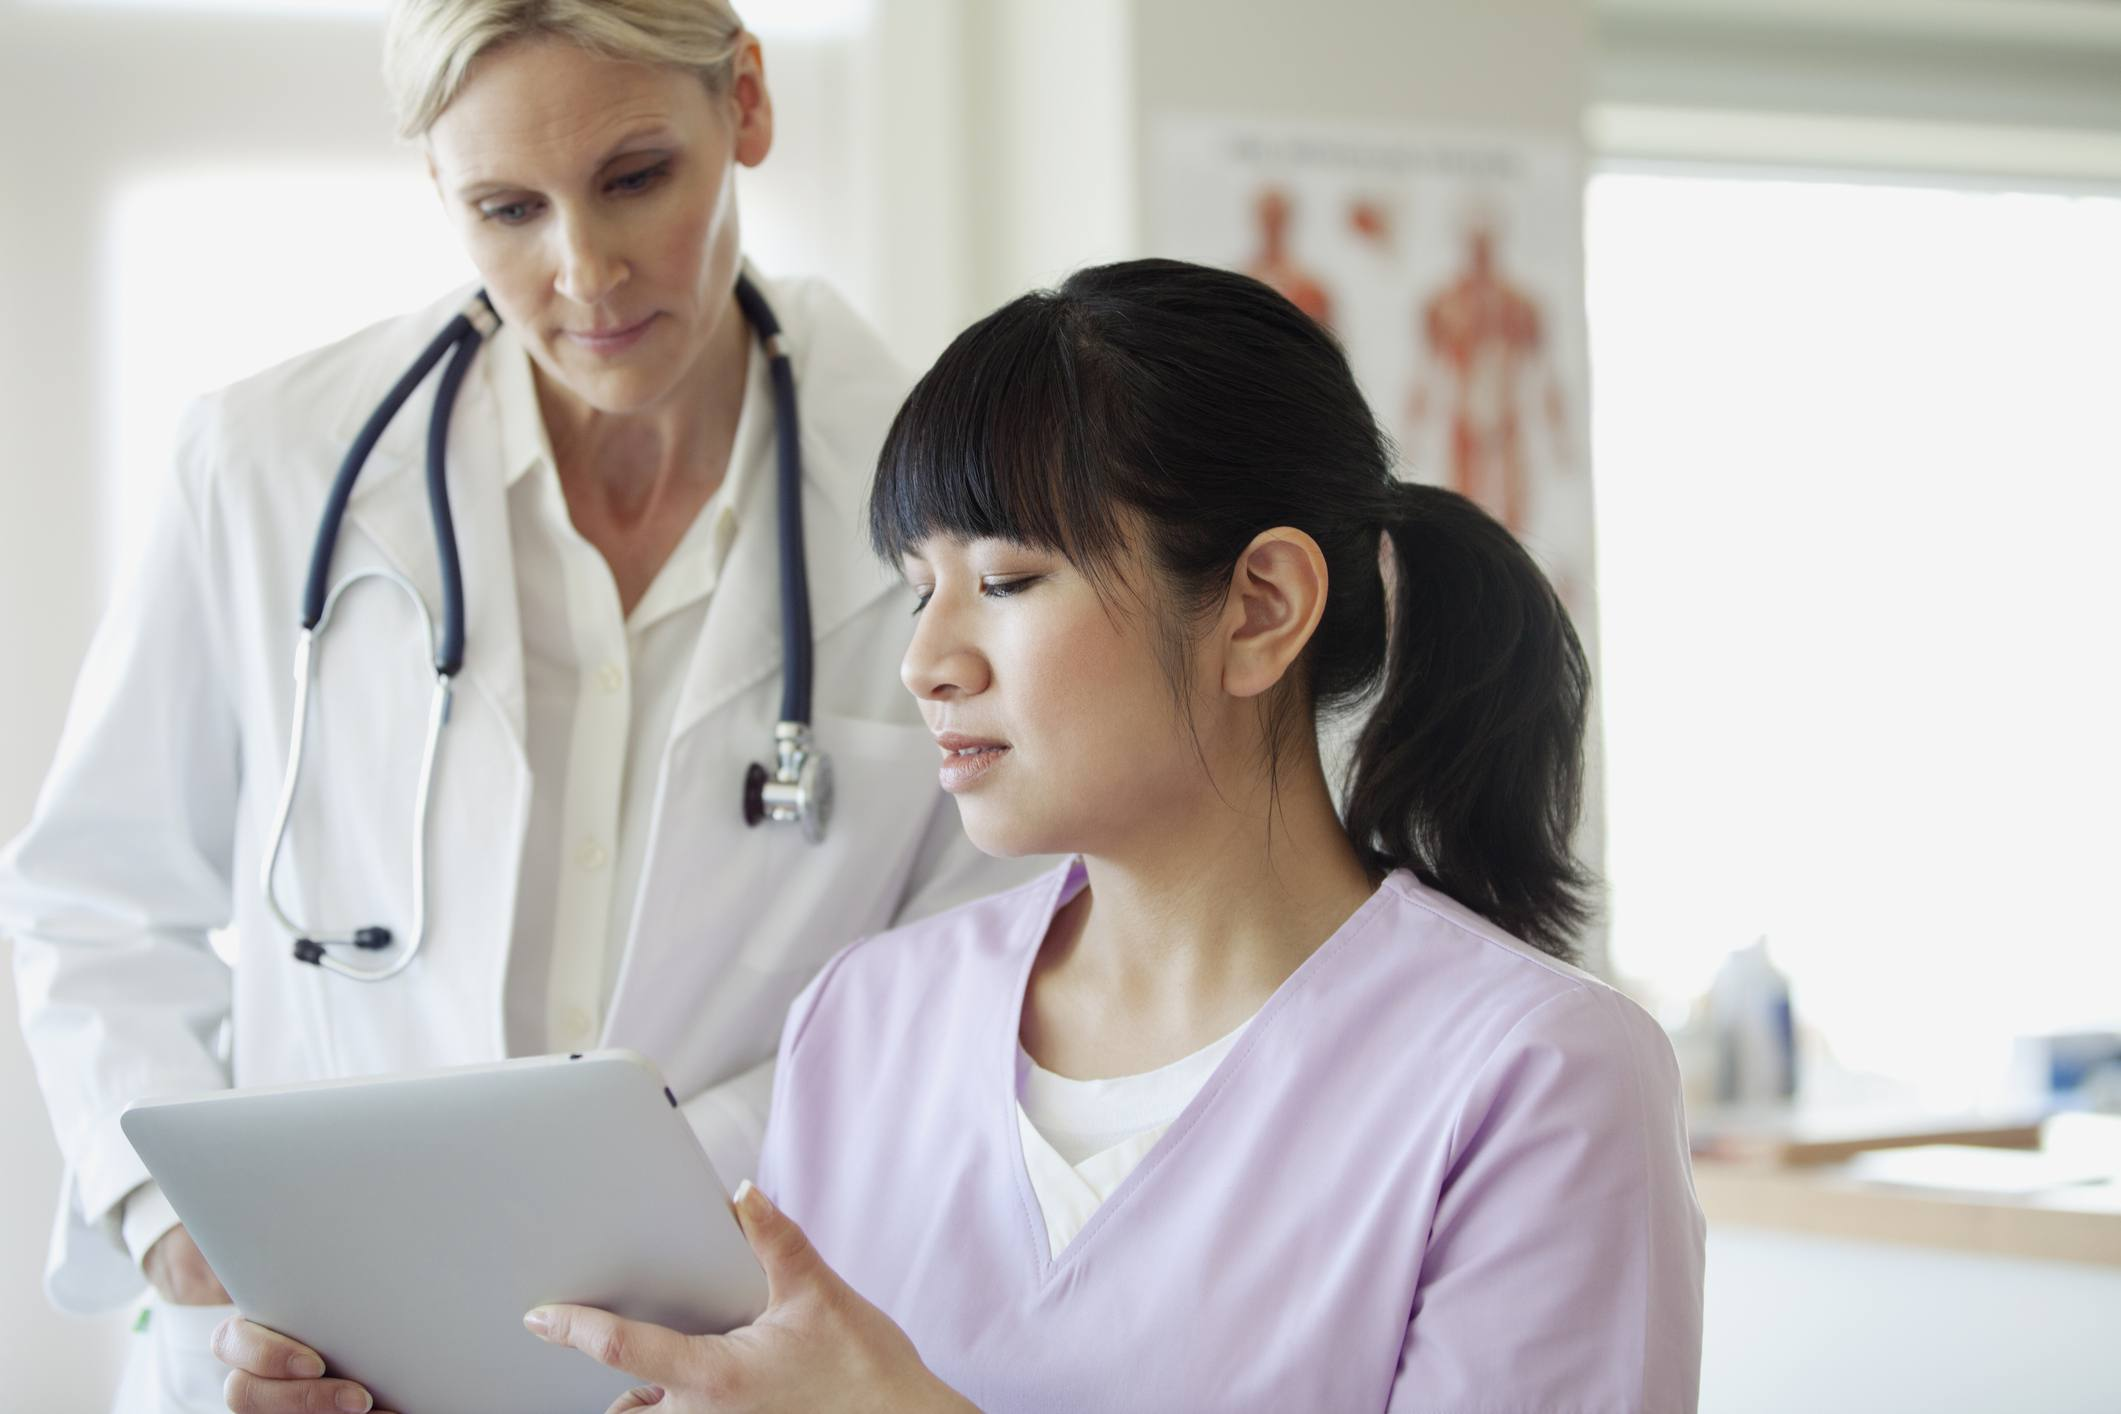 Physician reviewing information on a tablet with a physician assistant